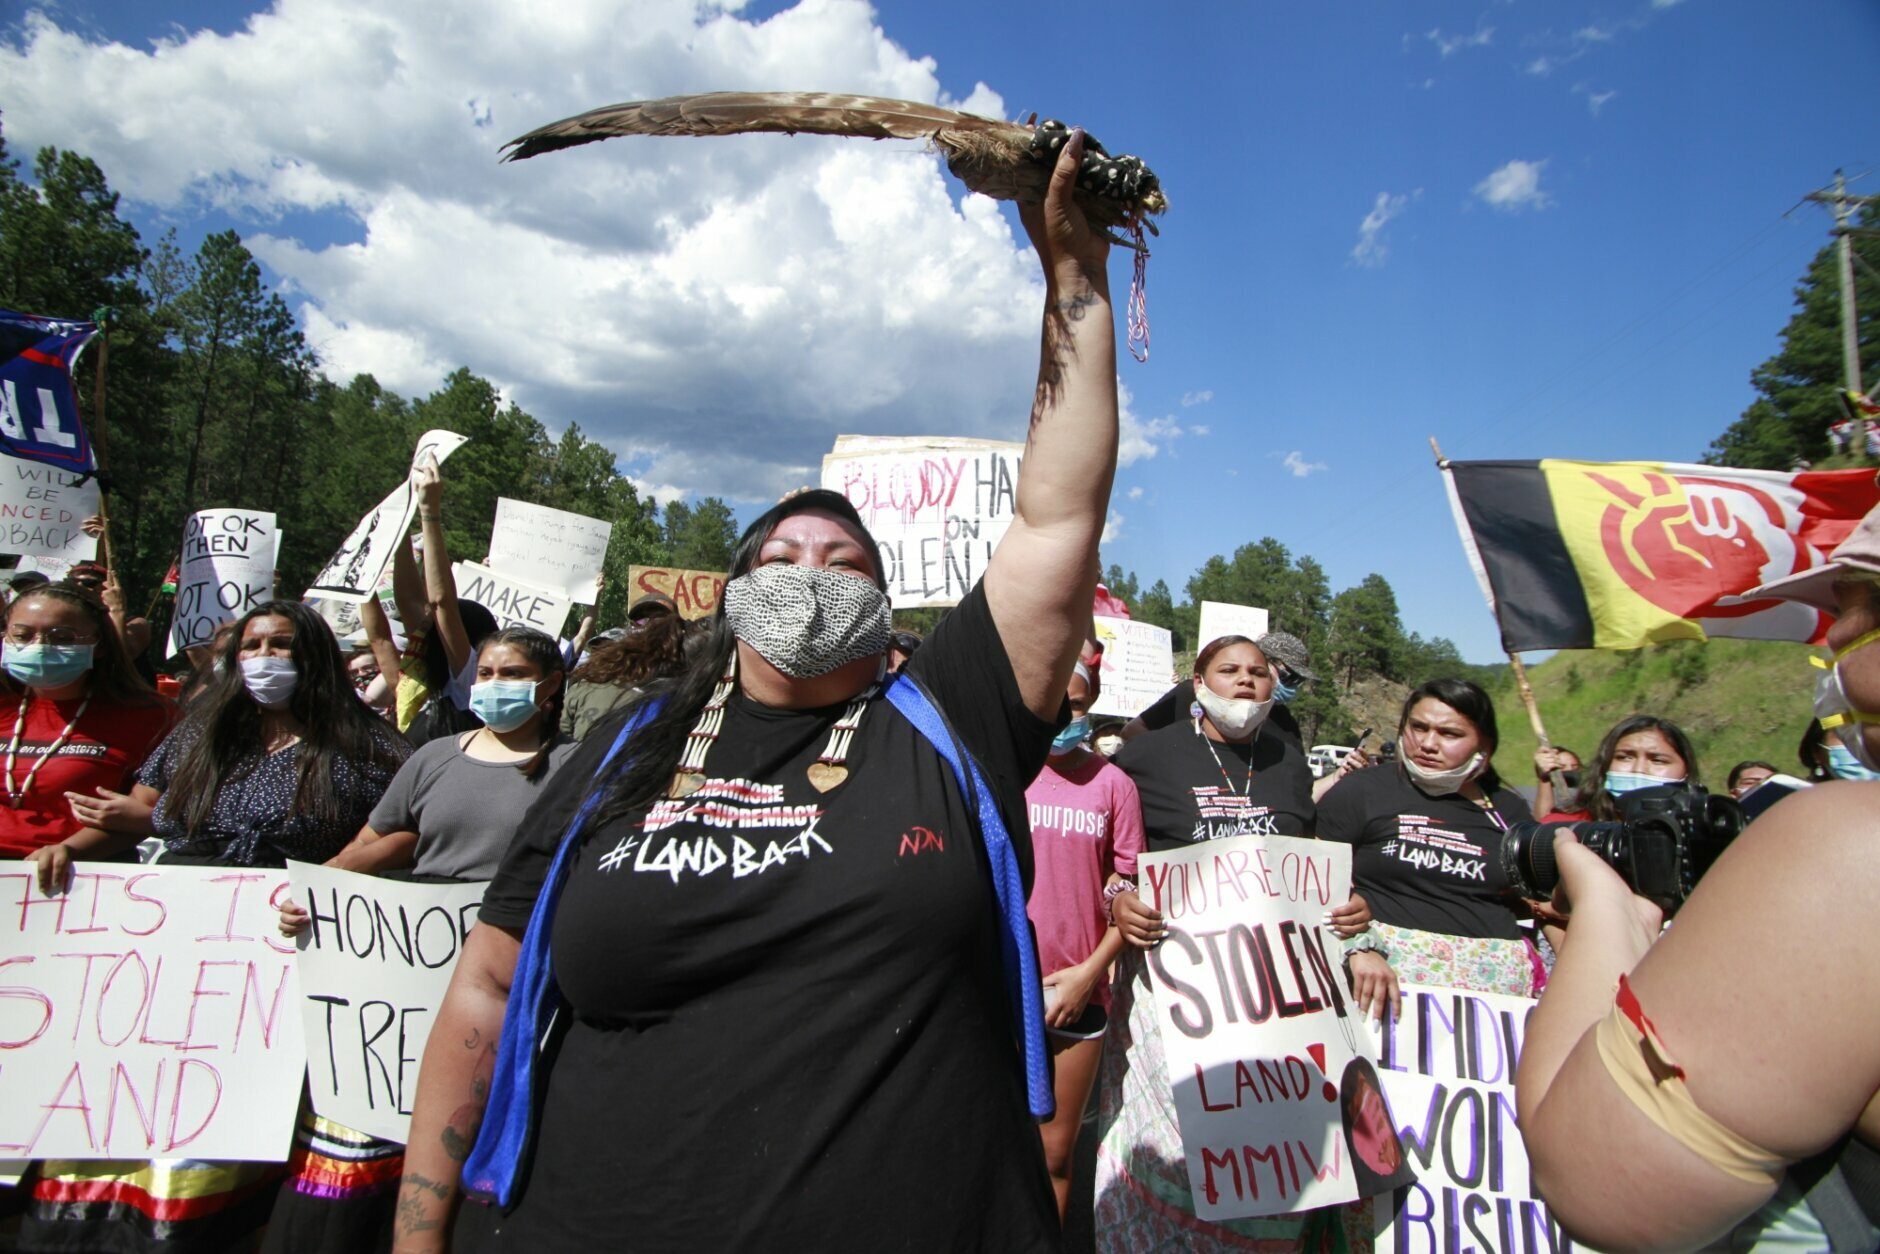 Native American protesters demonstrate in Keystone, S.D., ahead of President Donald Trump's visit to the memorial Friday, July 3, 2020. Protesters are advocating for the Black Hills to be returned to the Lakota people. (AP Photo/Stephen Groves)